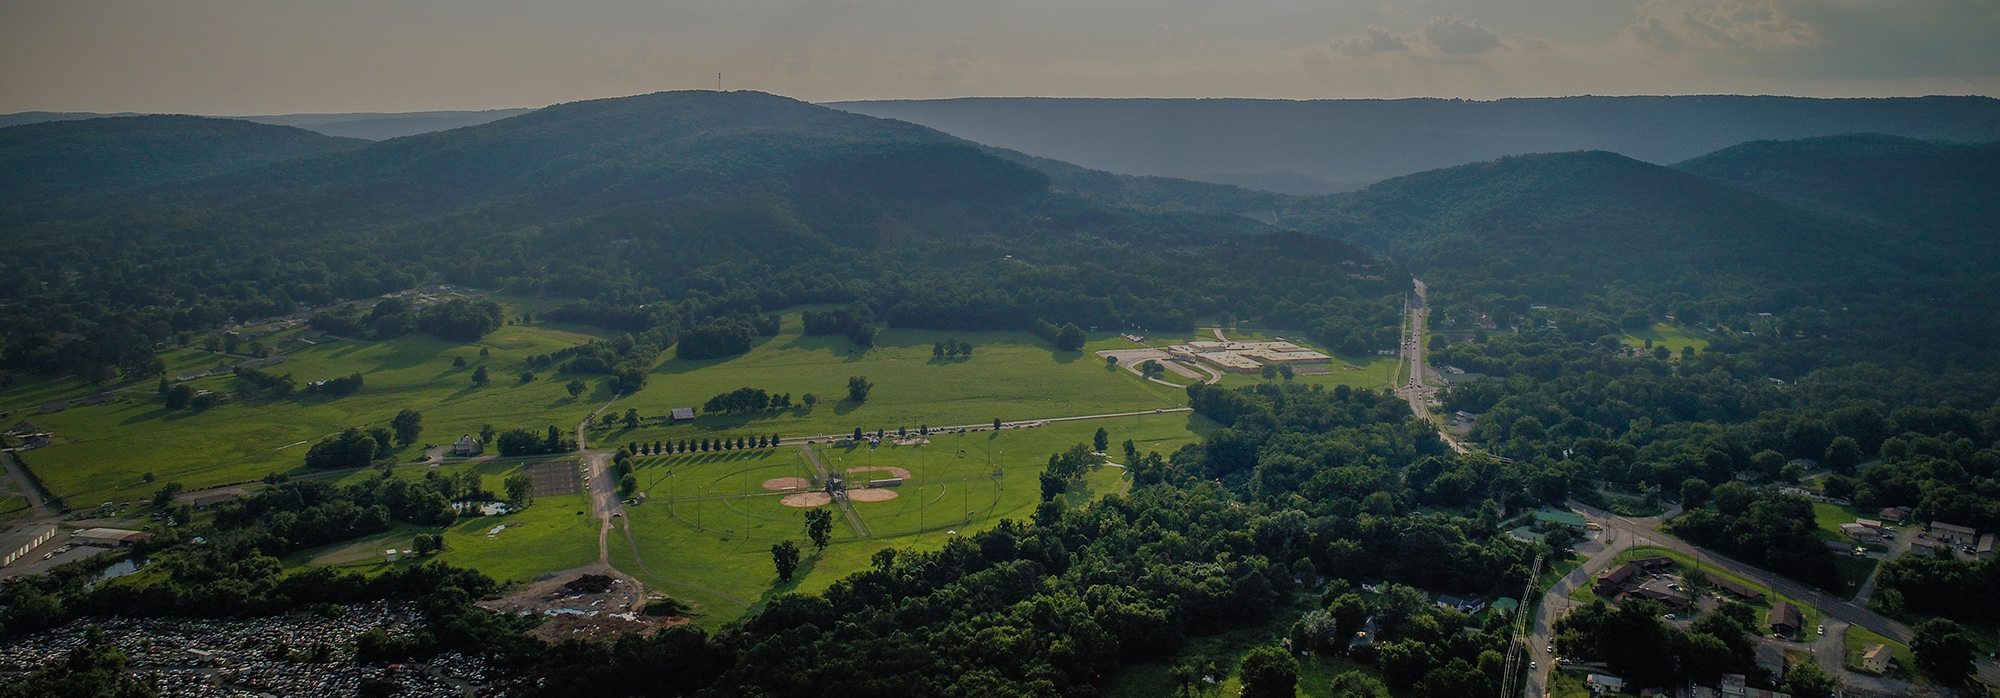 Apple Orchards Of The Chattanooga Region Chattanooga Region Travel